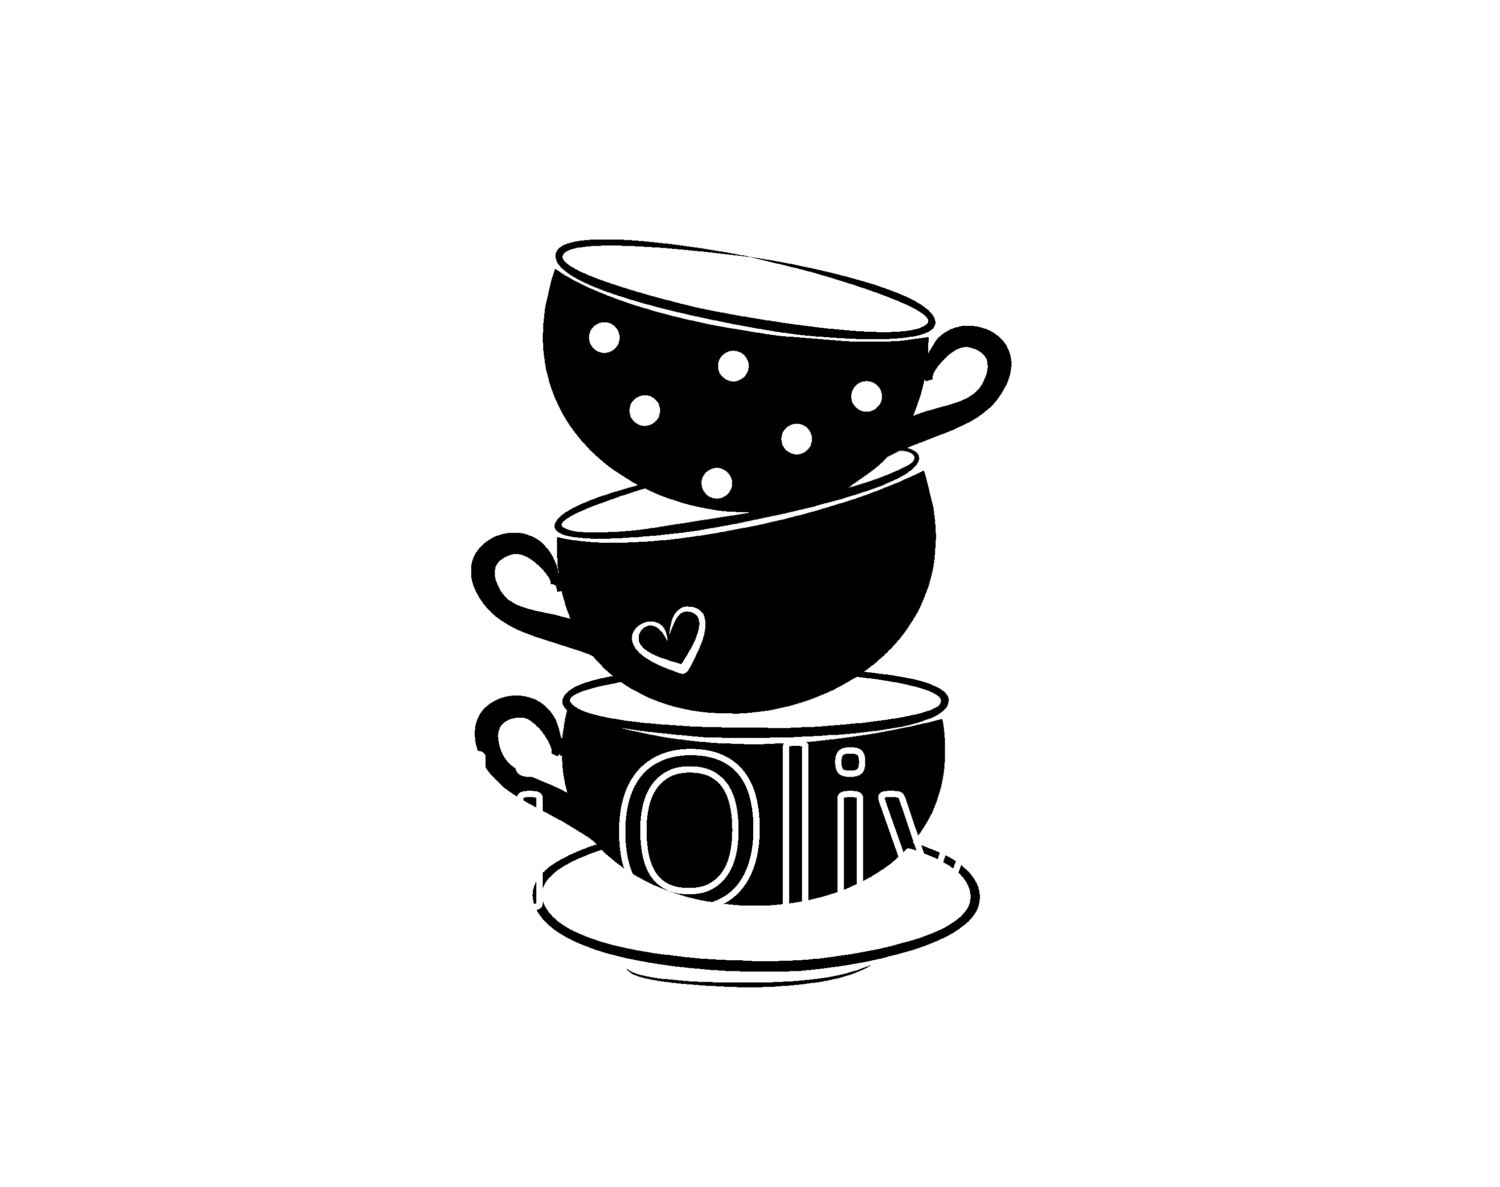 Teacups SVG,black teacups vector Cutting file, tea party clip art.